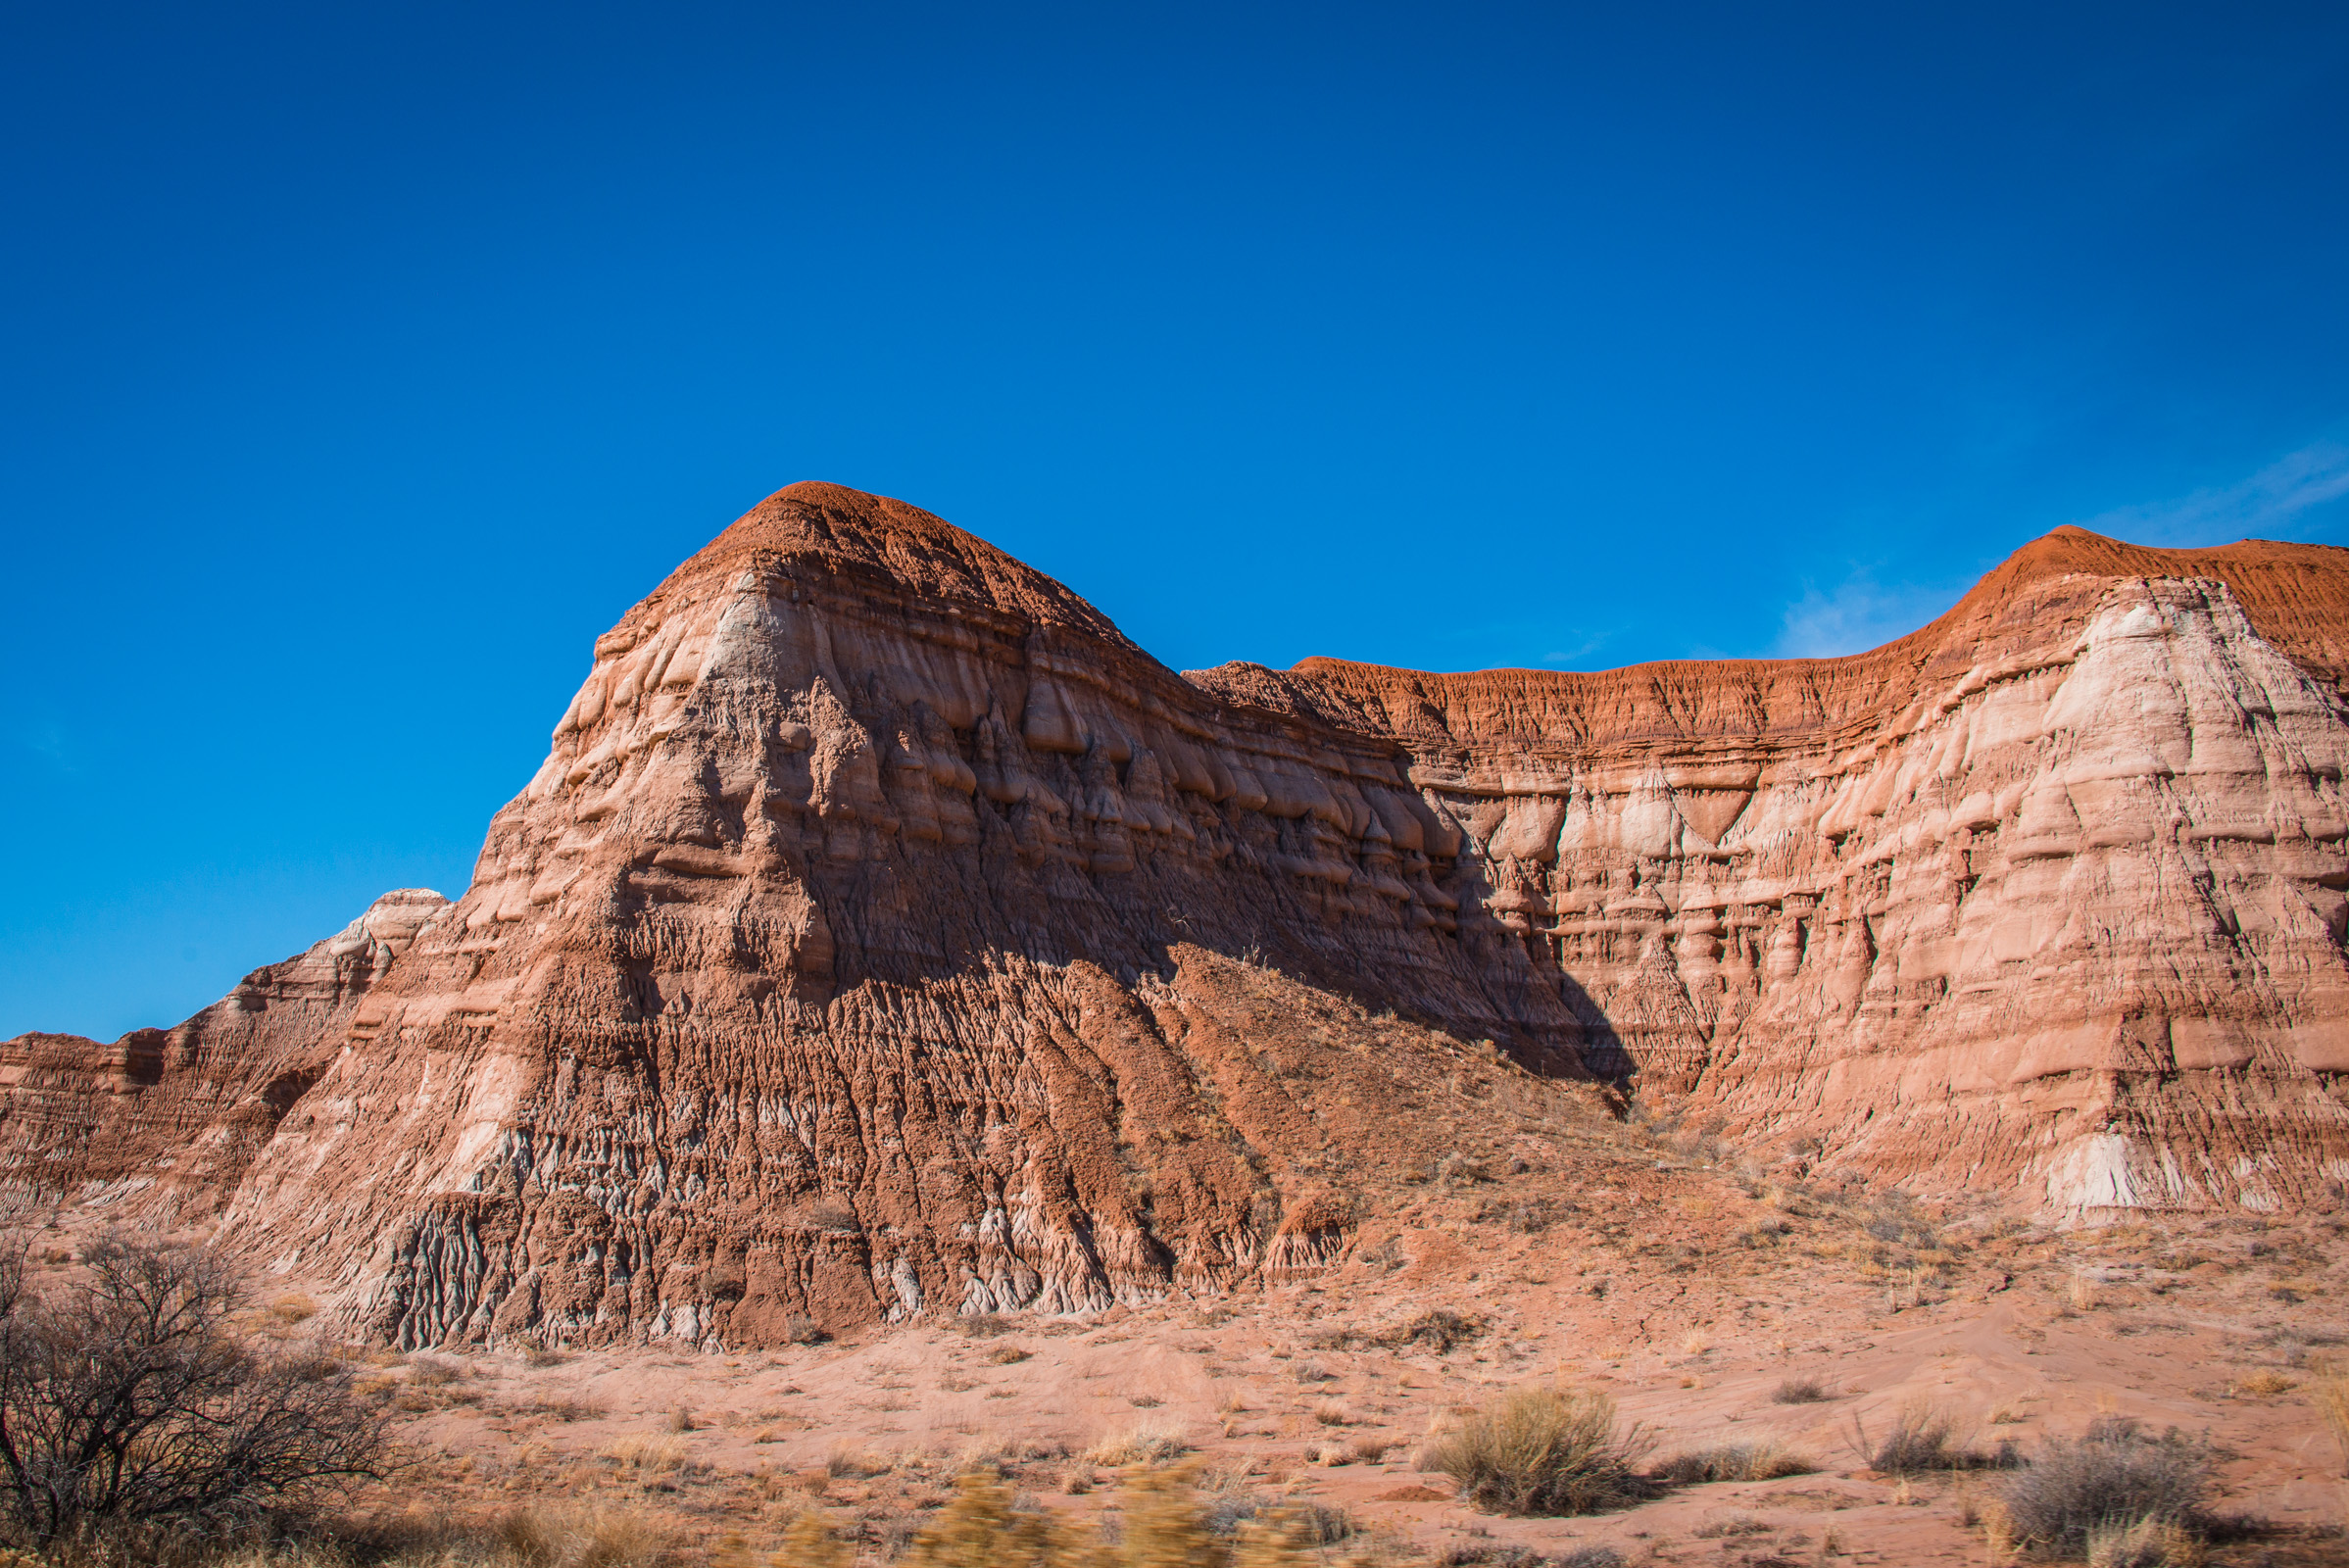 roadside landscape with red rocks against a blue sky somewhere between utah and nevada, photographed by jamie bannon photography.